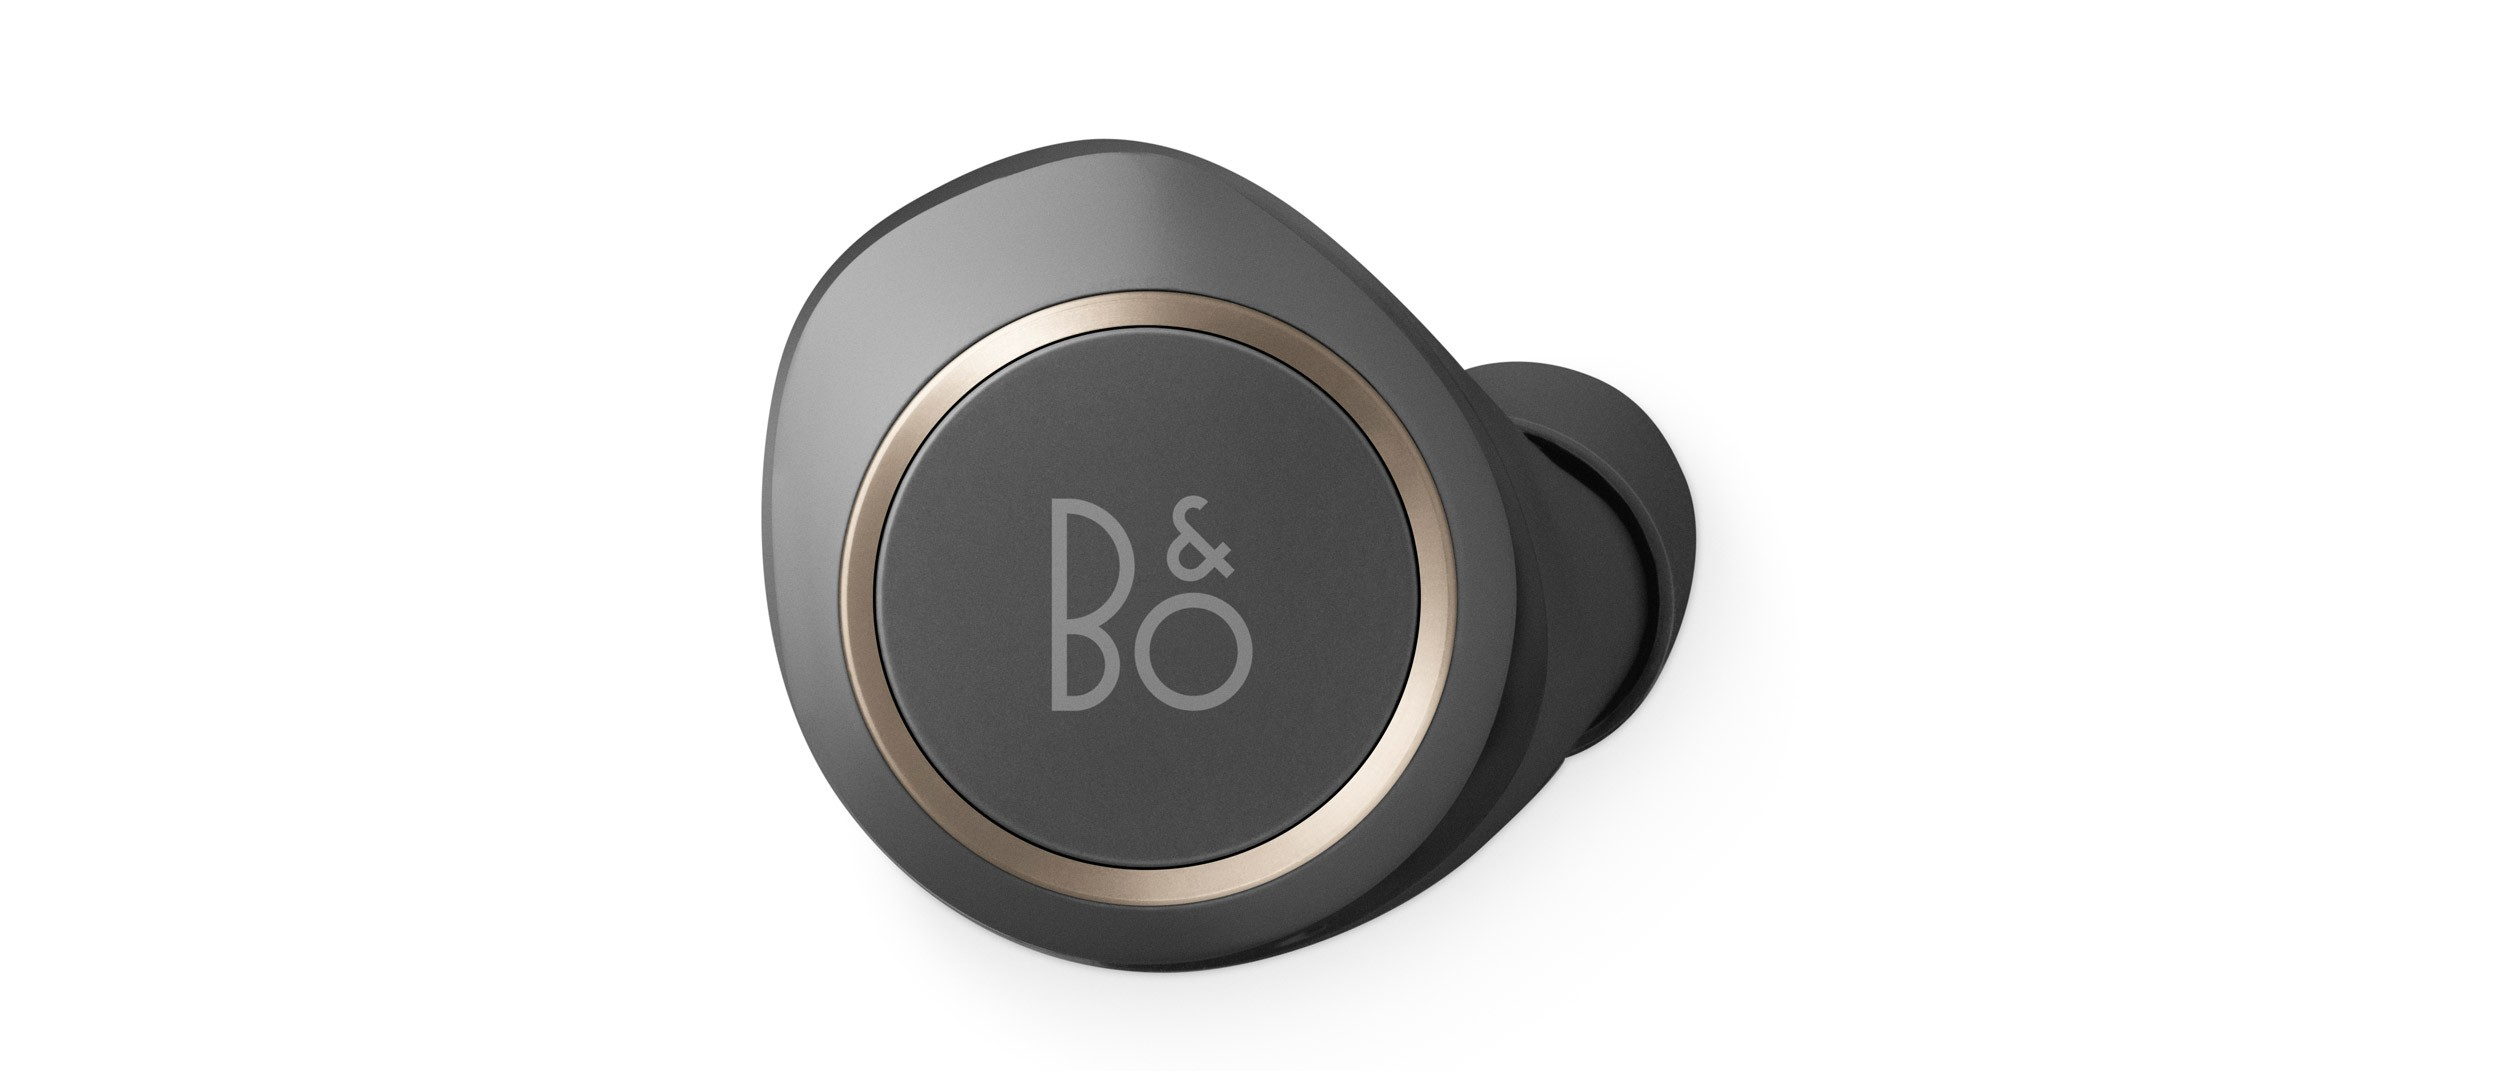 Beoplay E8 True wireless earbuds with up to 4 hours battery in ear headphones